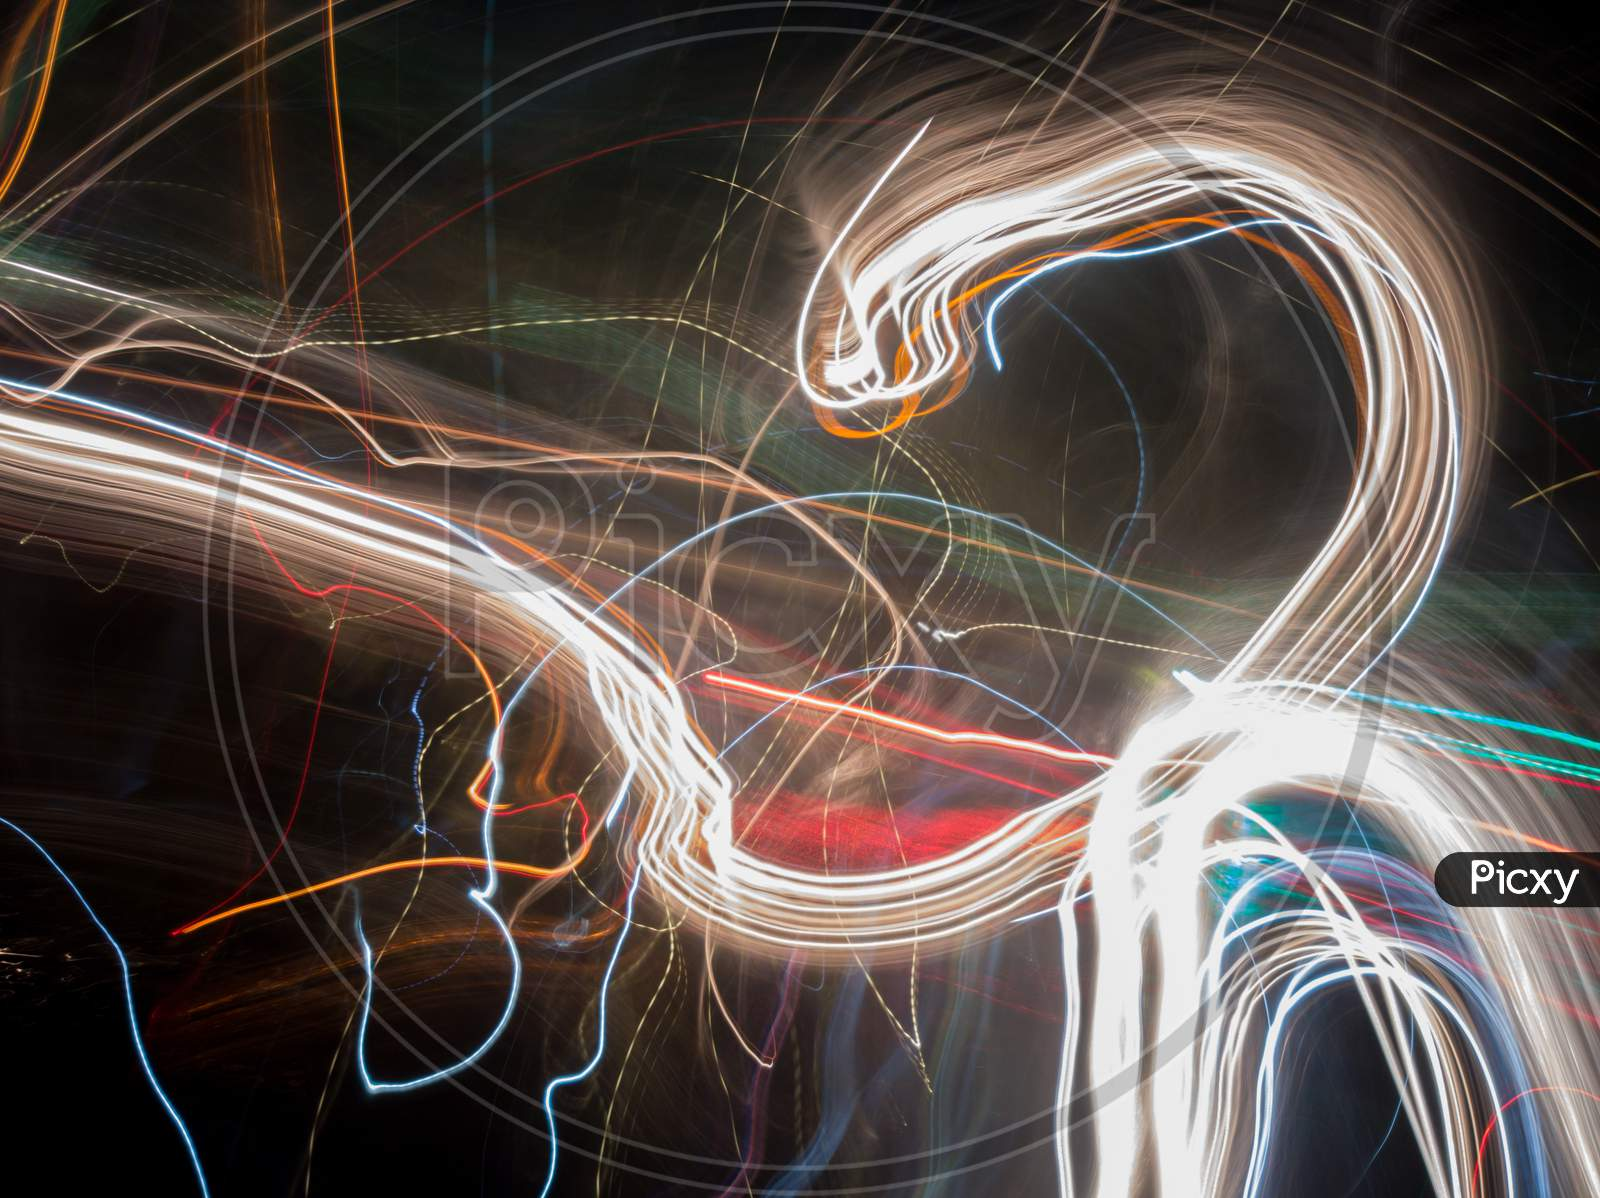 Light painting from various kind of light sources